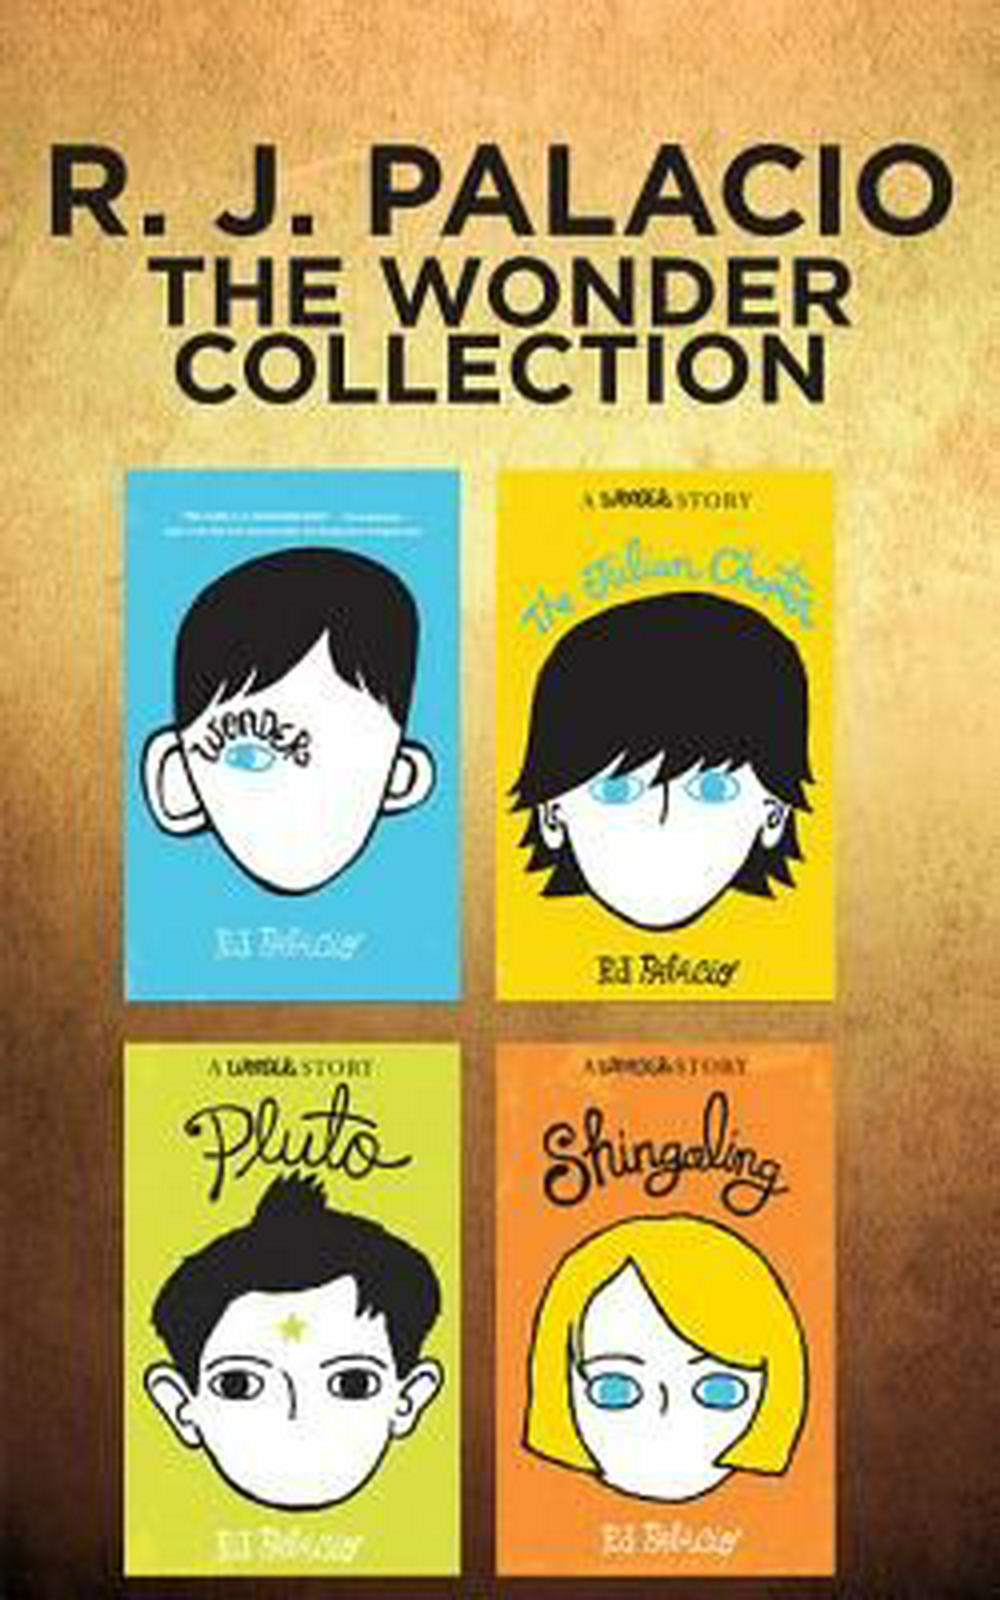 R. J. Palacio - the Wonder Collection: Wonder / the Julian Chapter / Pluto / Shingaling by R. J. Palacio, ISBN: 9781536614350